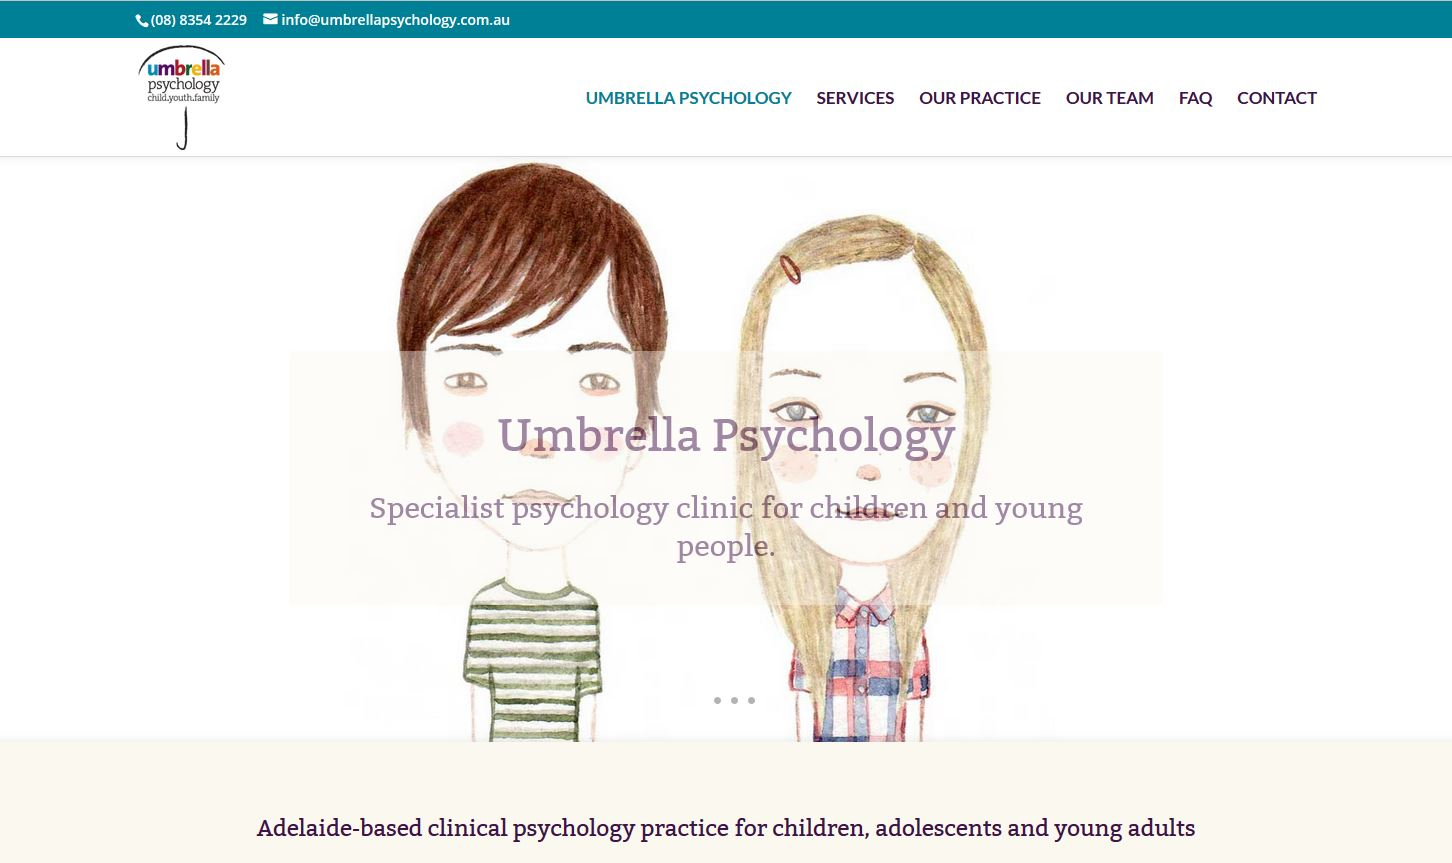 Website for Umbrella Psychology in Adelaide